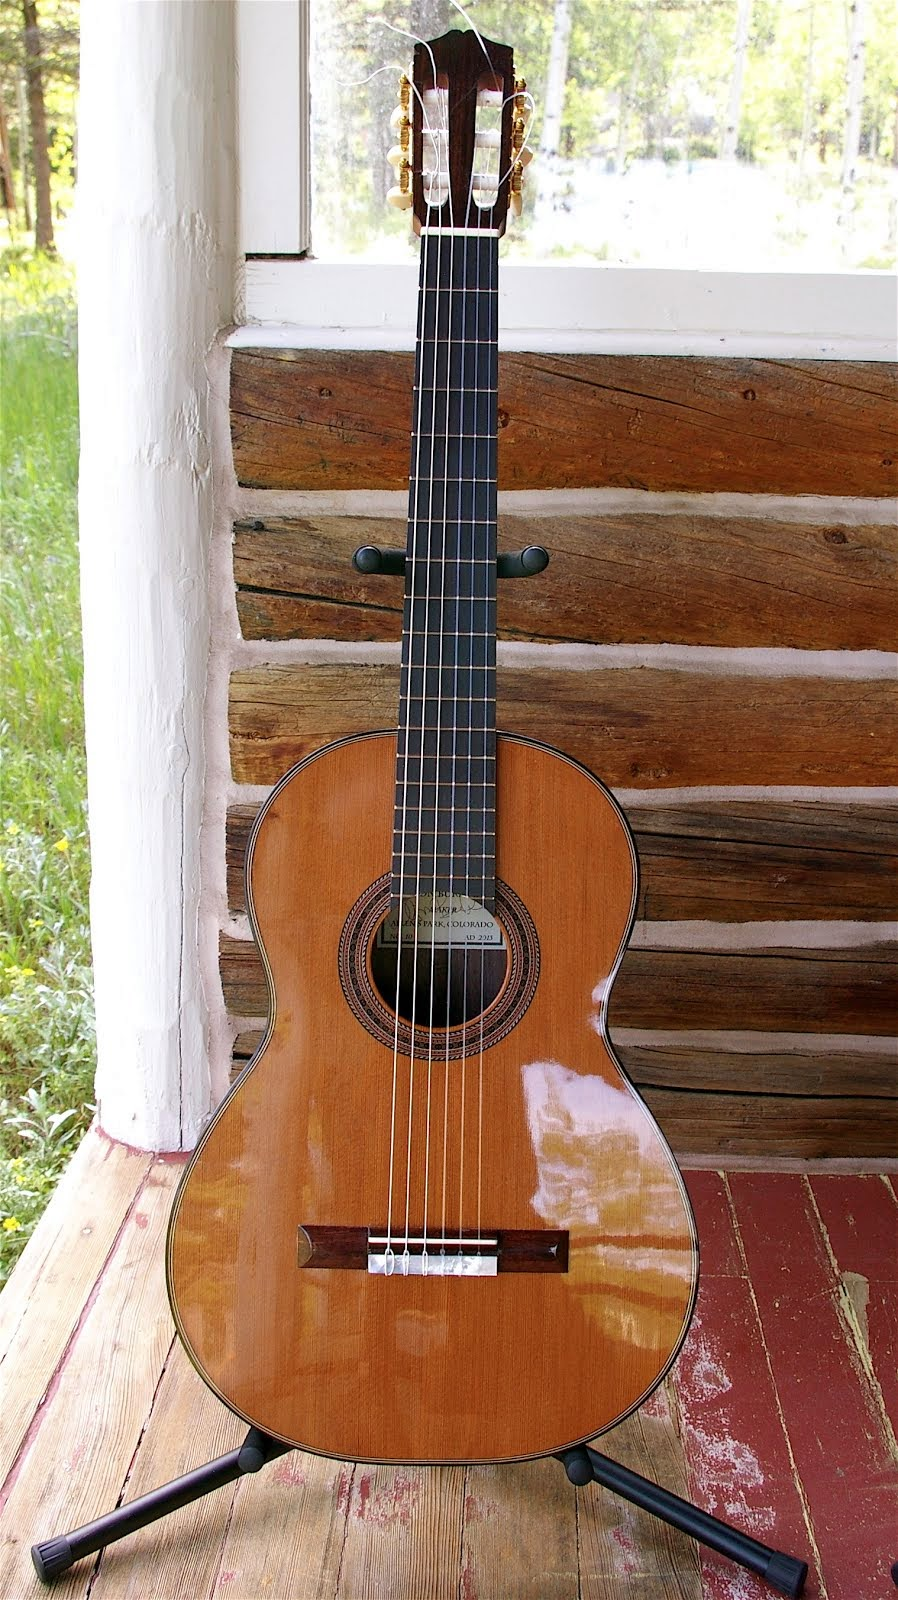 Sold: 1929 Santos Hernandez Model